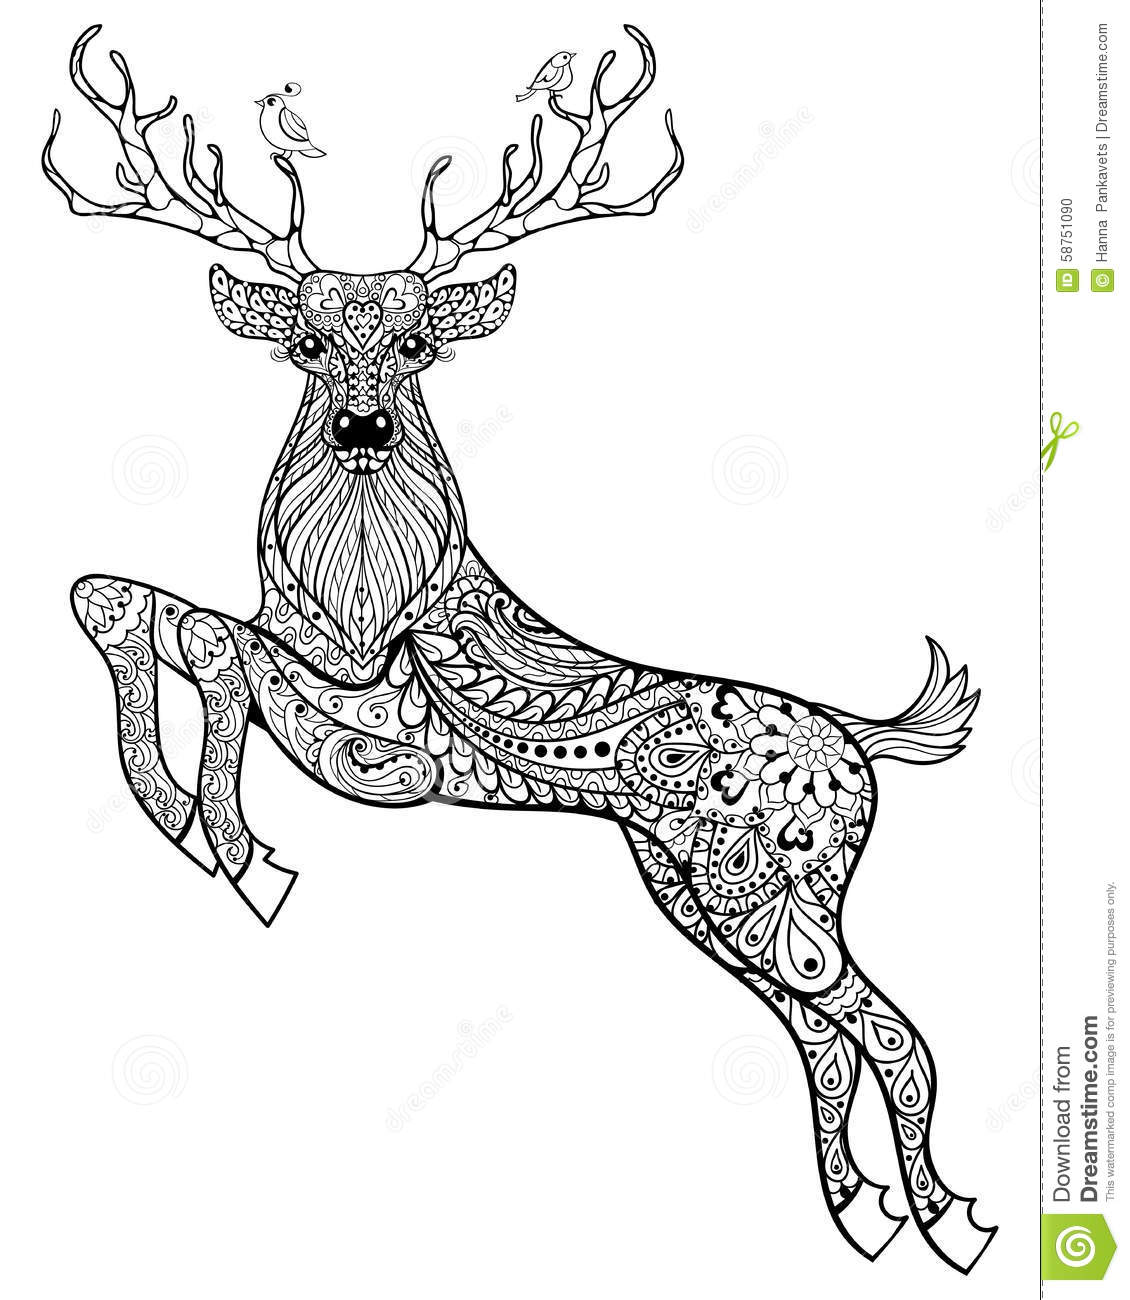 Plush Design Reindeer Animal Coloring Pages Mandala Deer Coloring